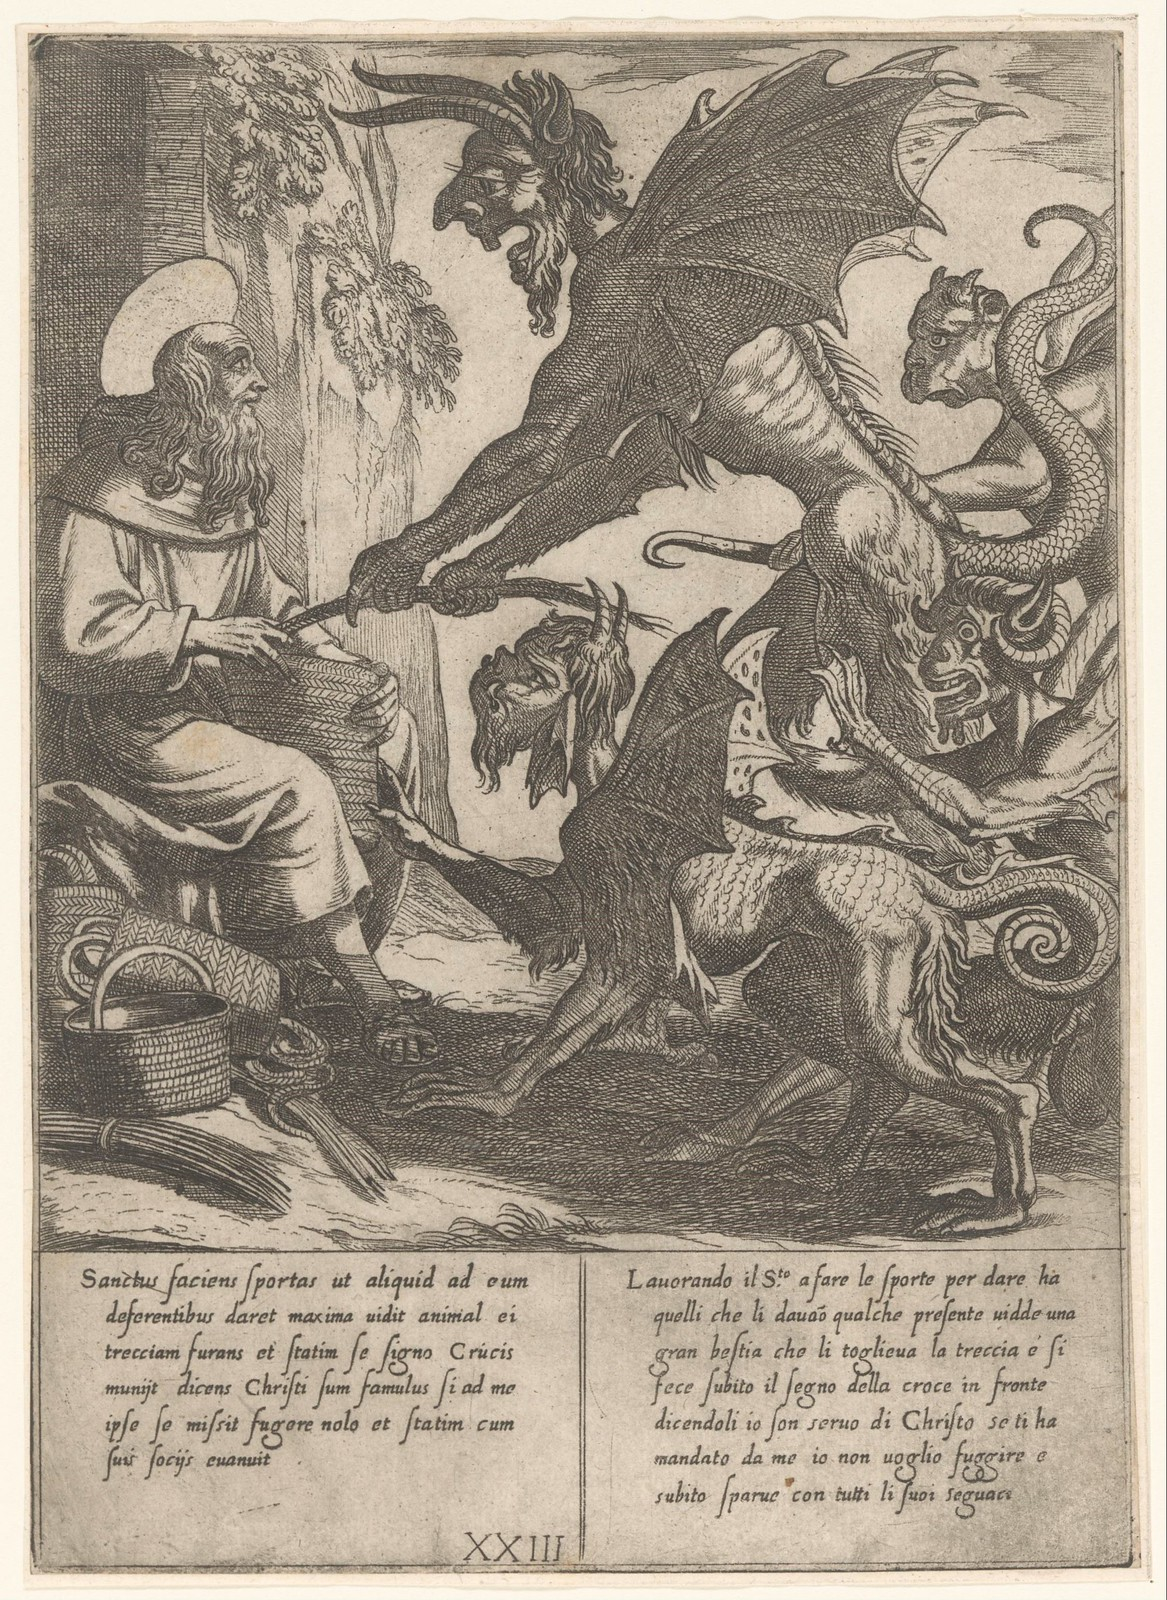 Antonio Tempesta, after Niccolo Circignani and Giovanni Battista Lombardelli - Saint Anthony With Demons - 01, 1598